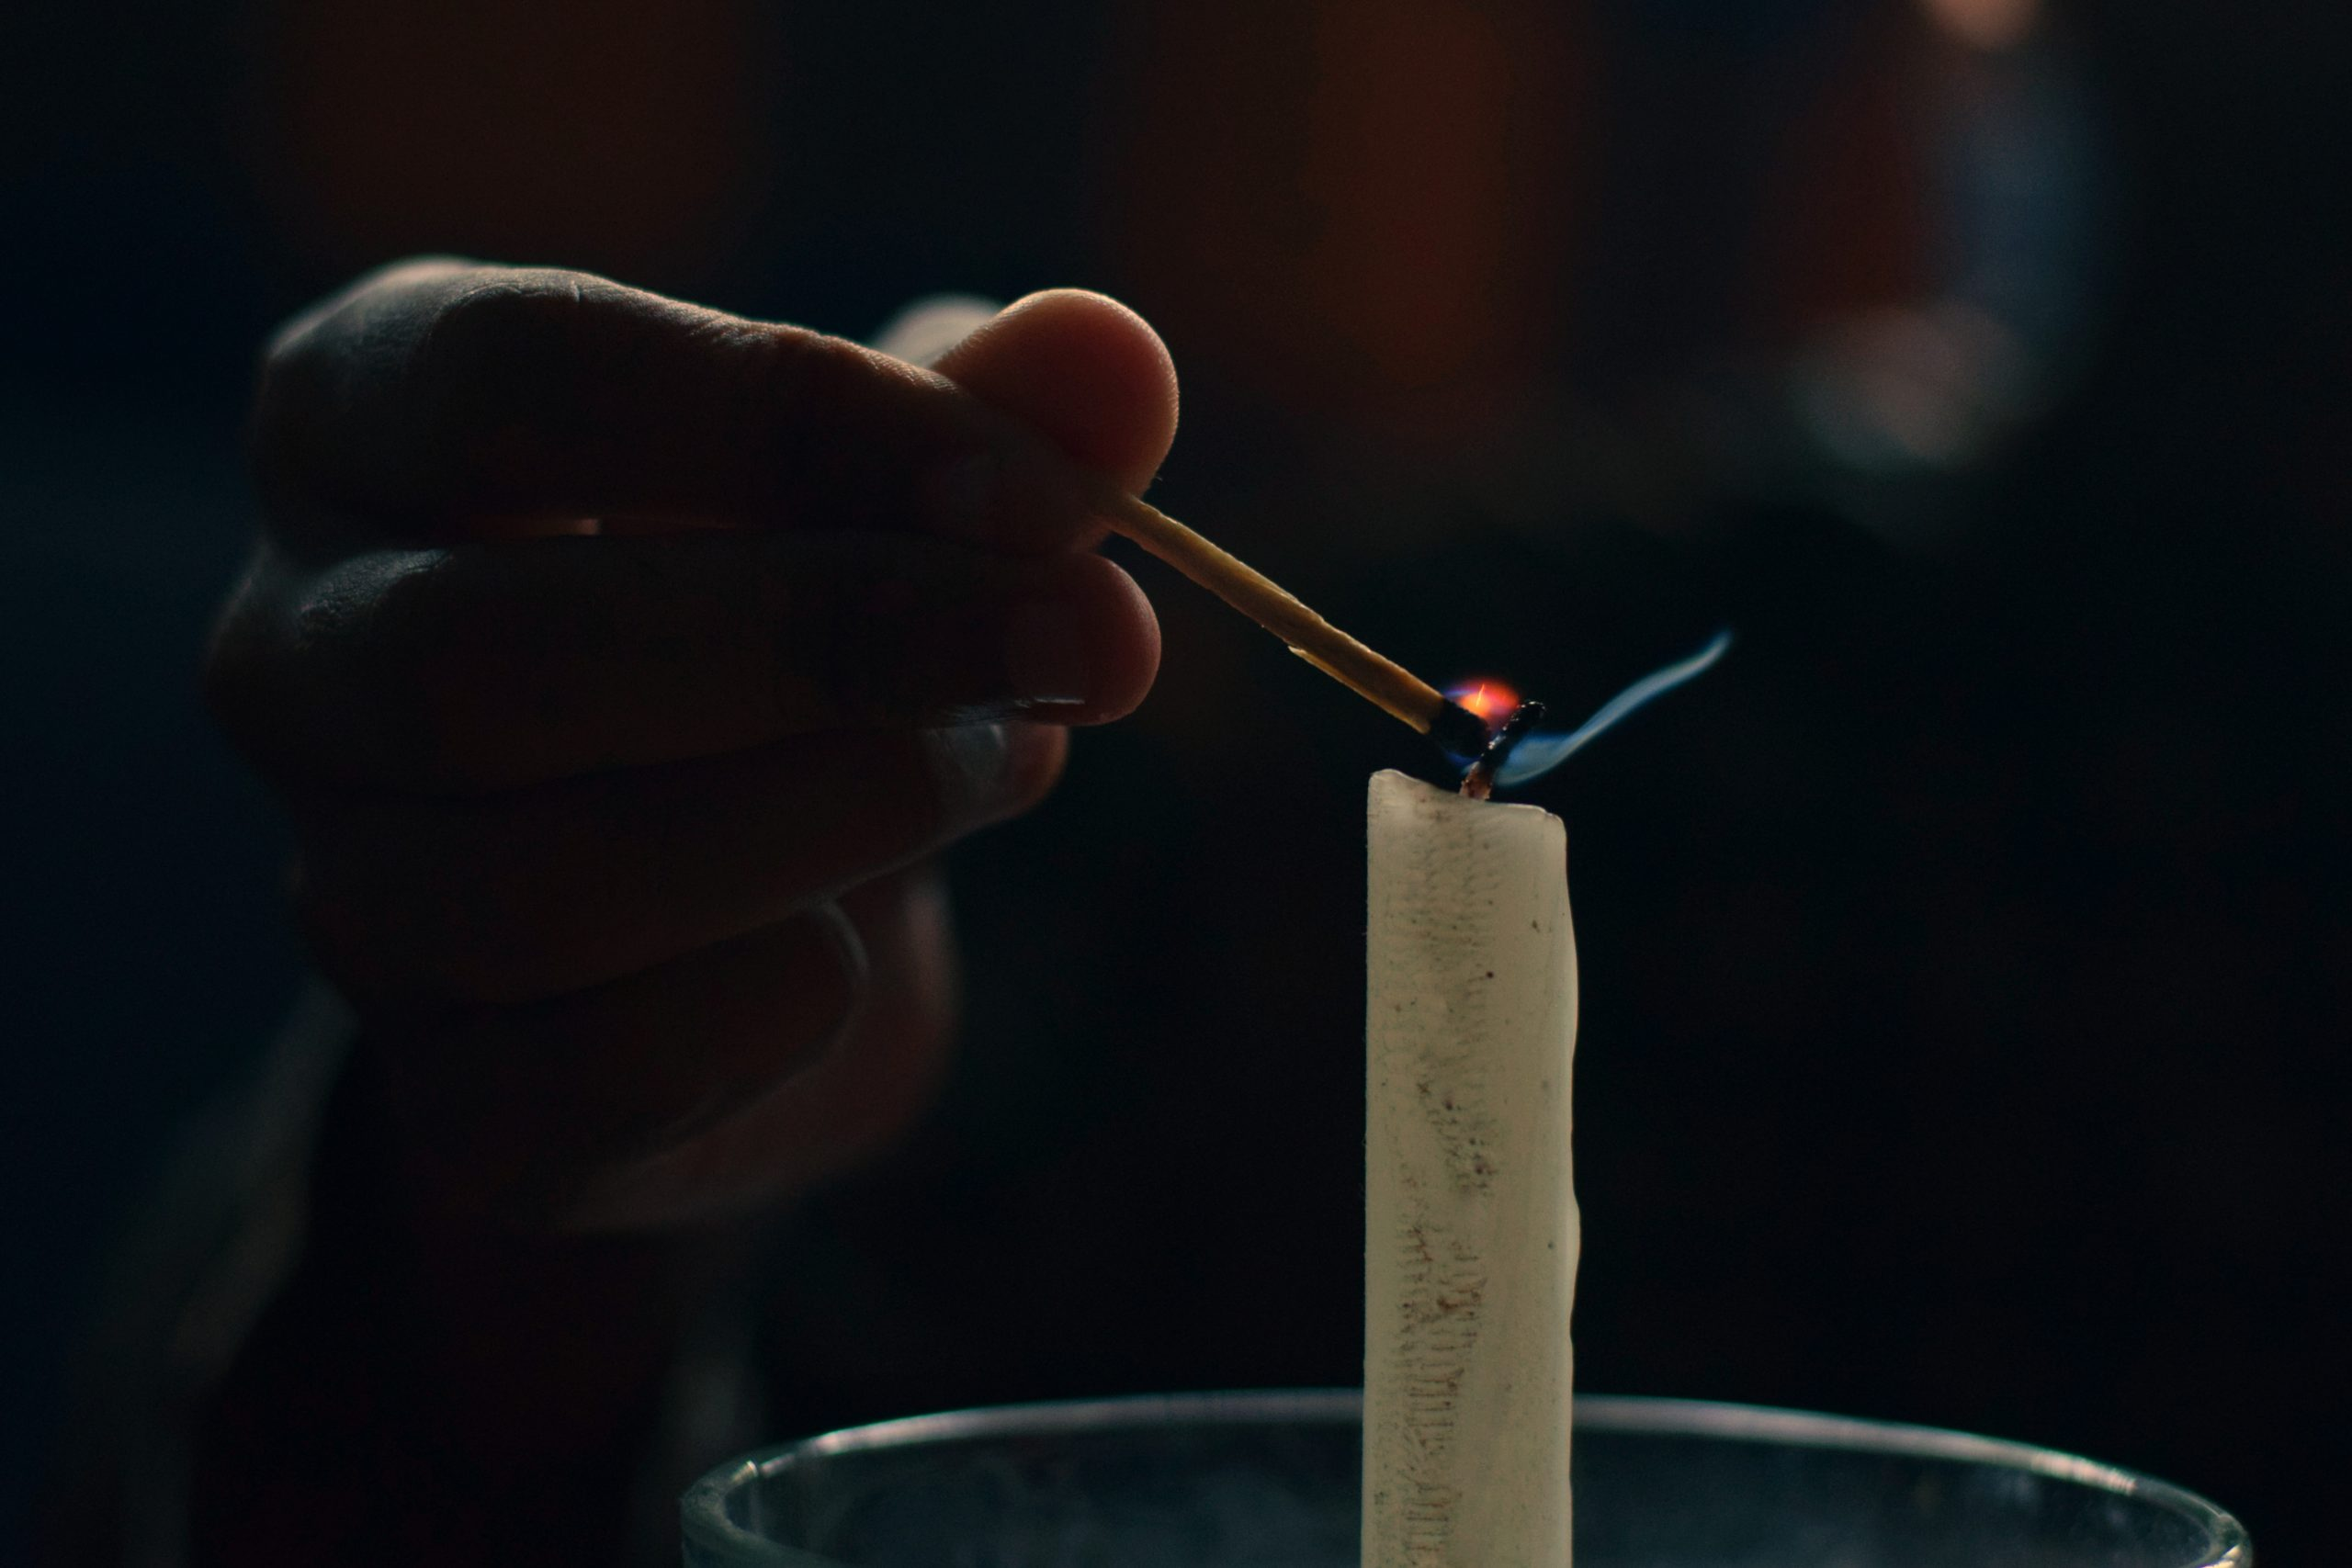 Hand Lighting a Candle on Focus